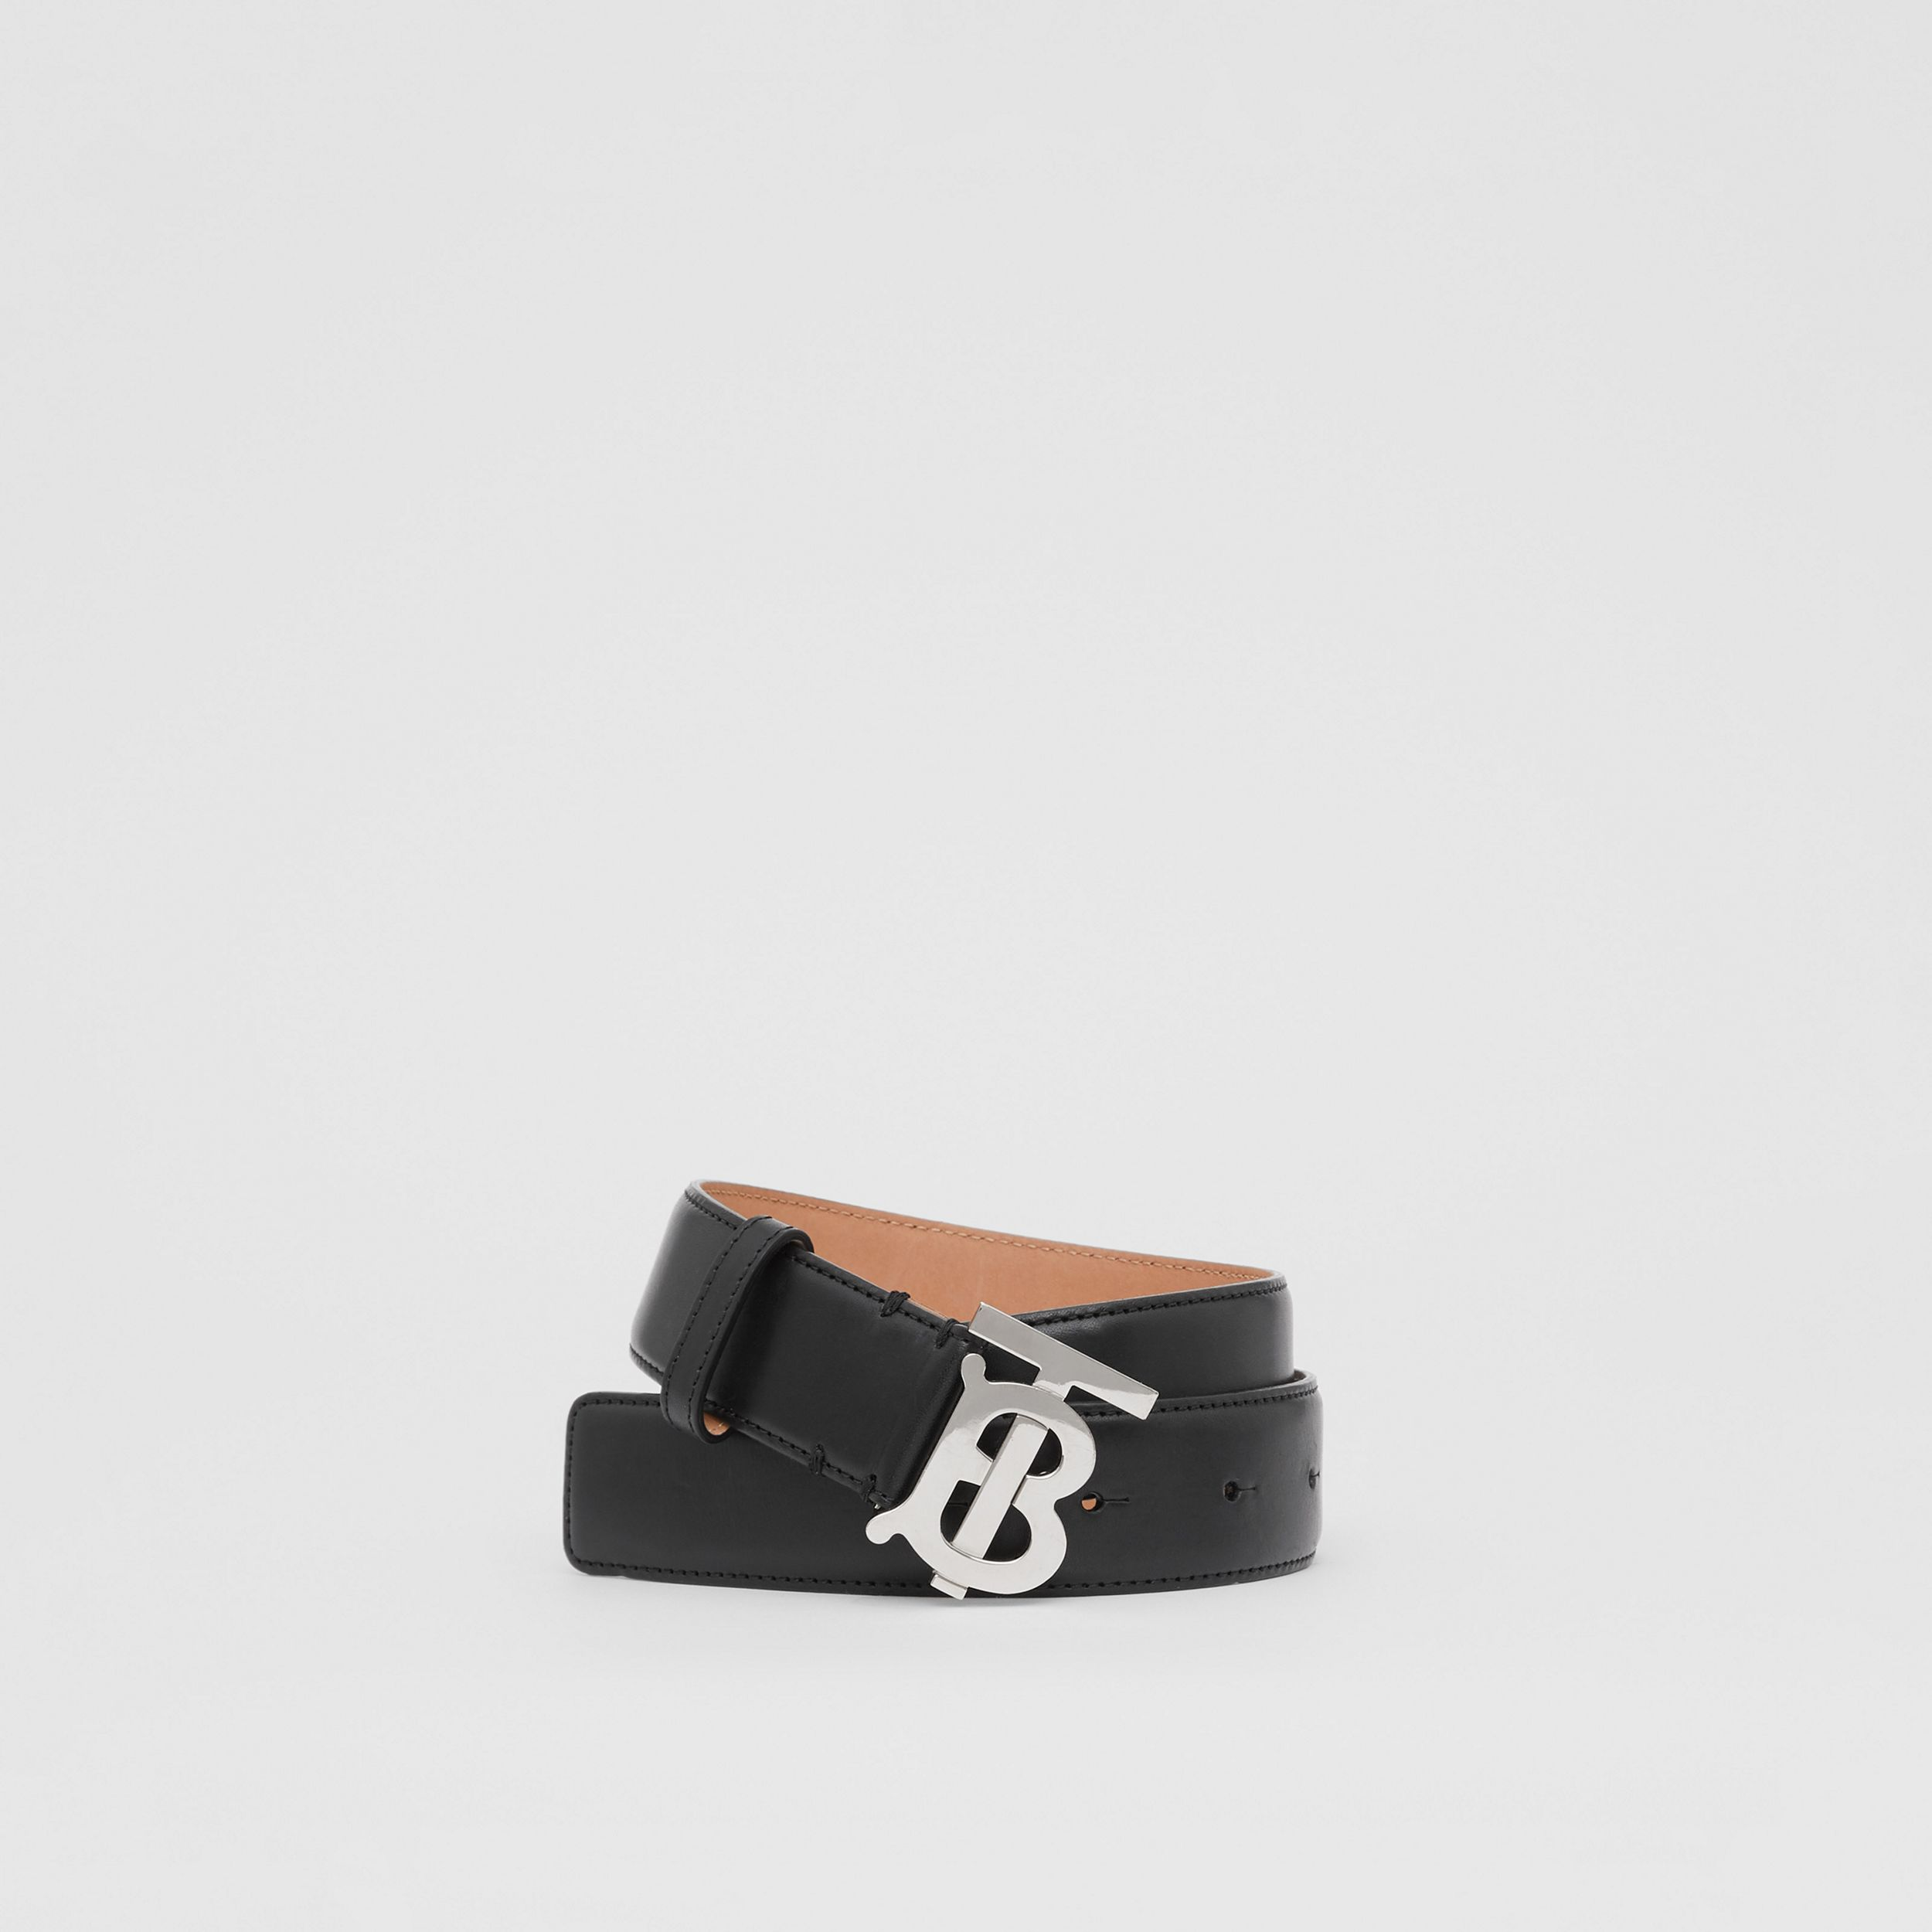 Monogram Motif Leather Belt in Black/palladium - Women | Burberry - 1